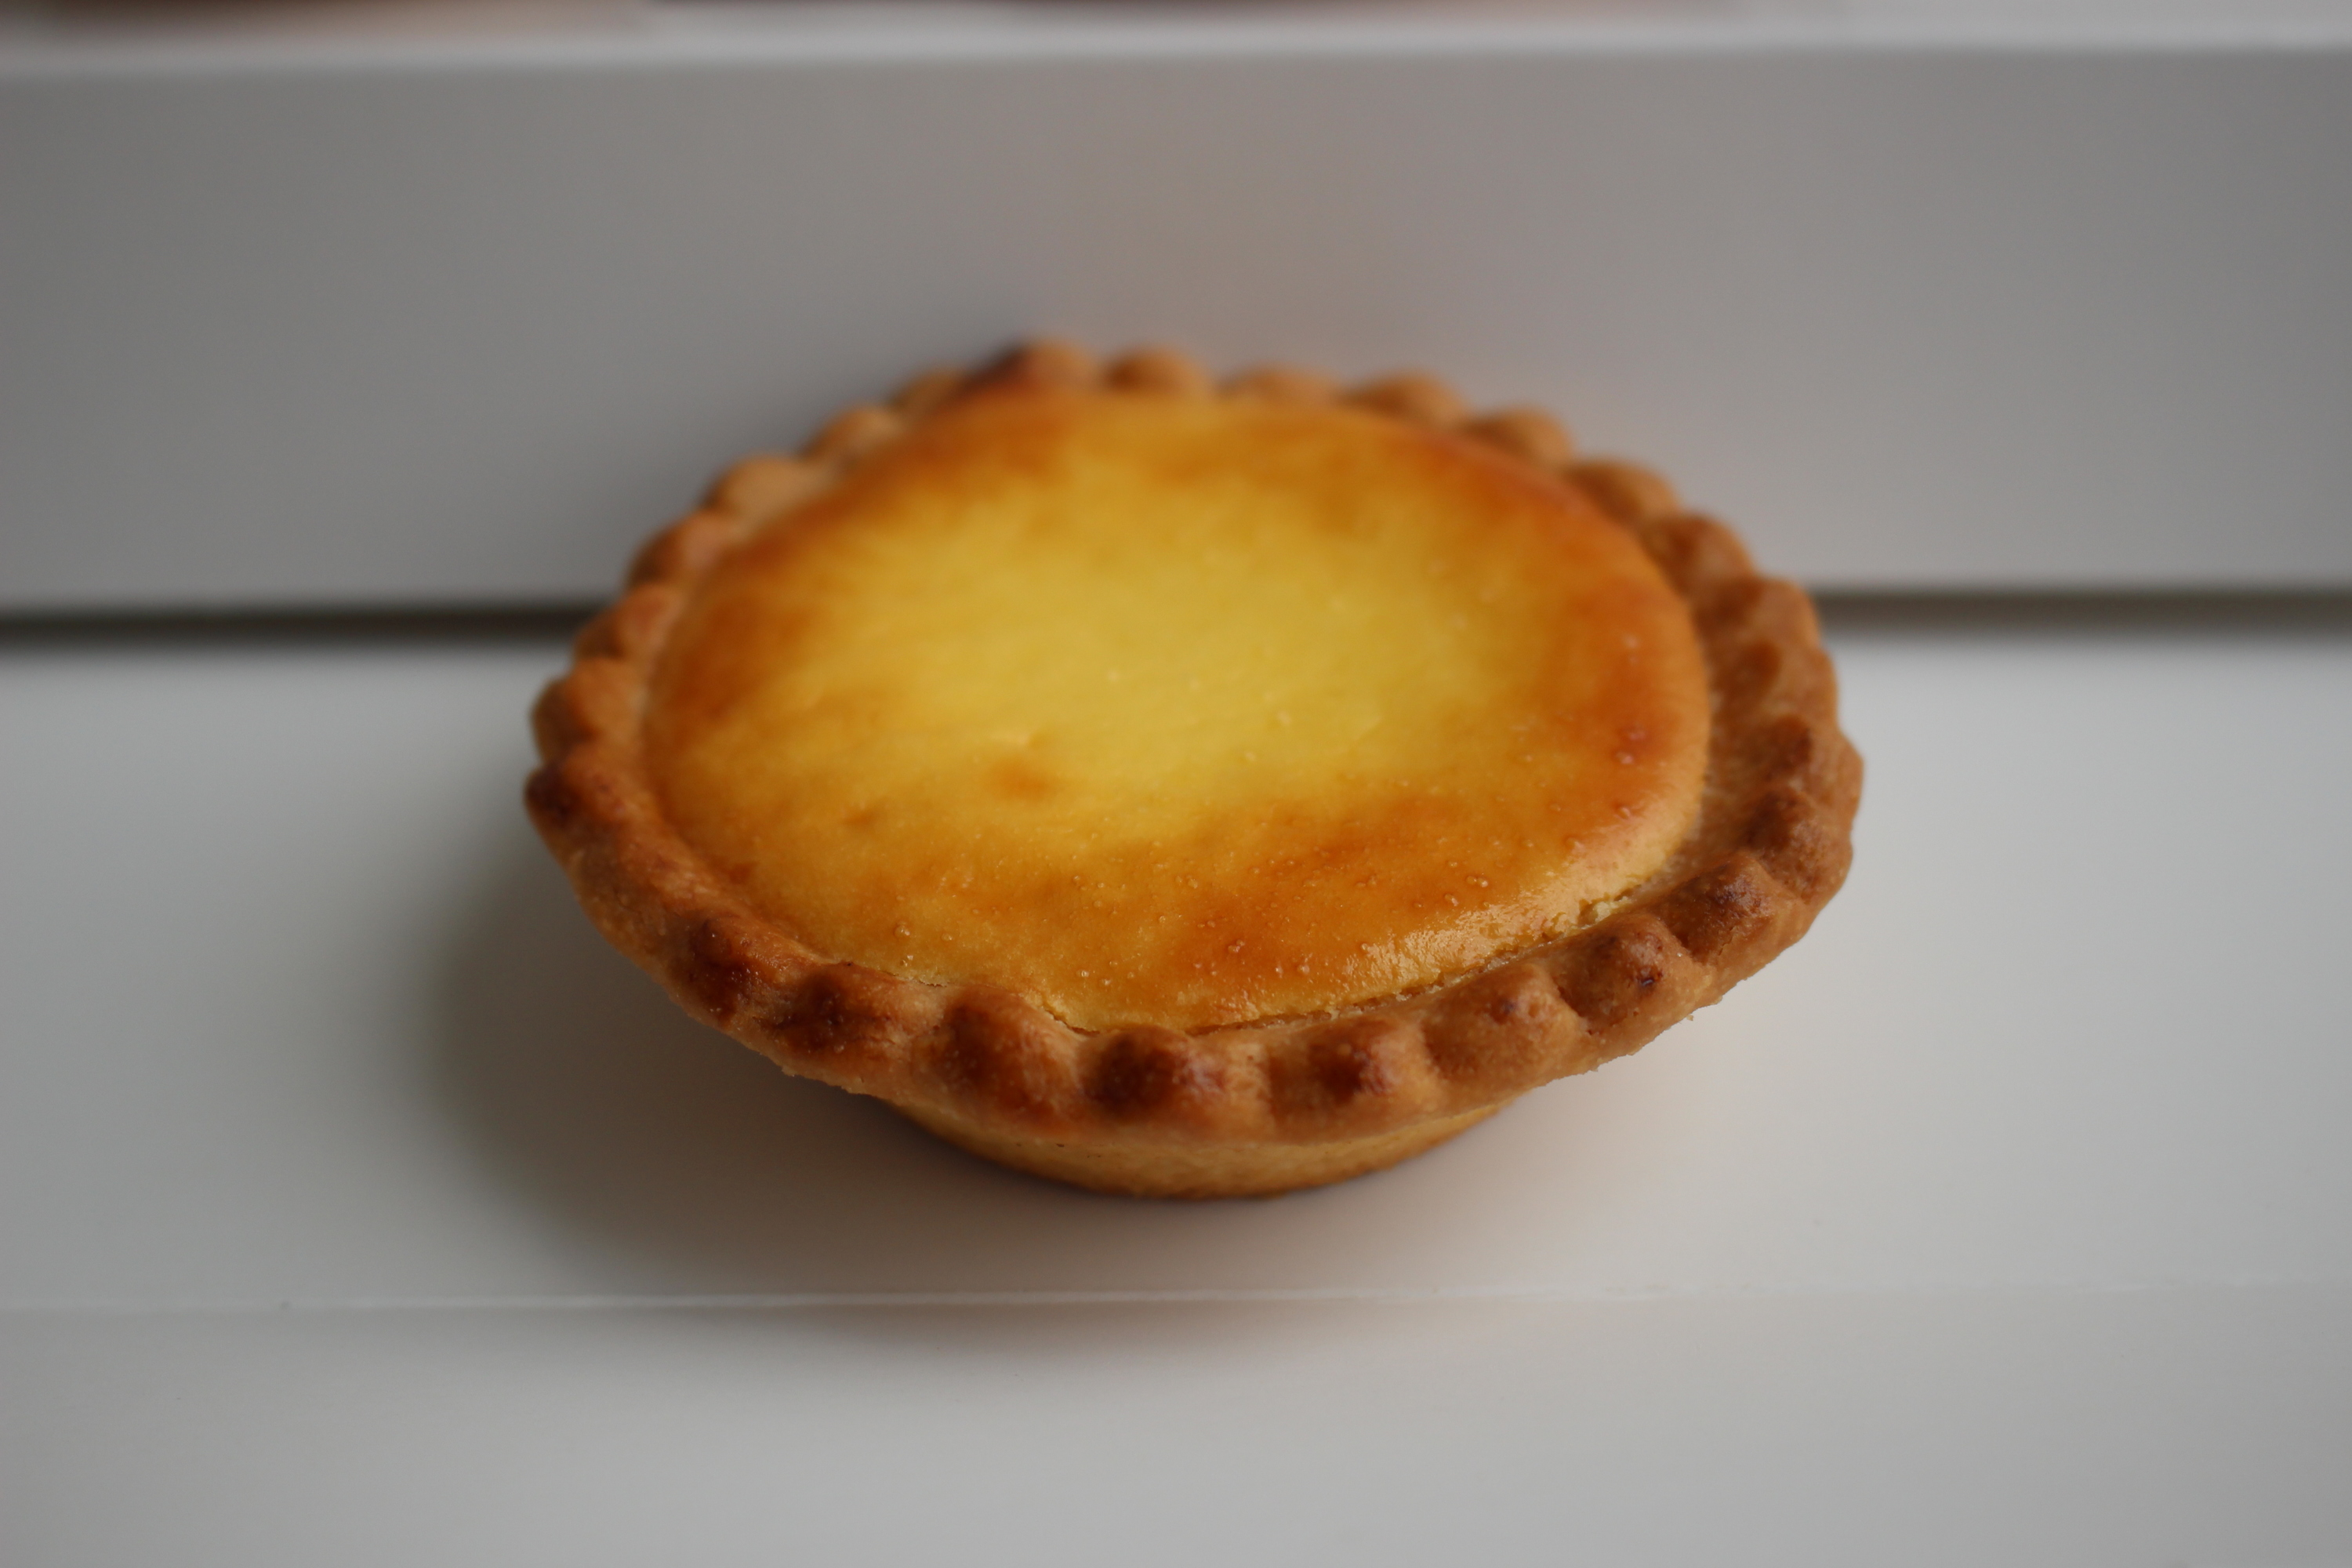 Reviewed: Baked cheese tarts in KL